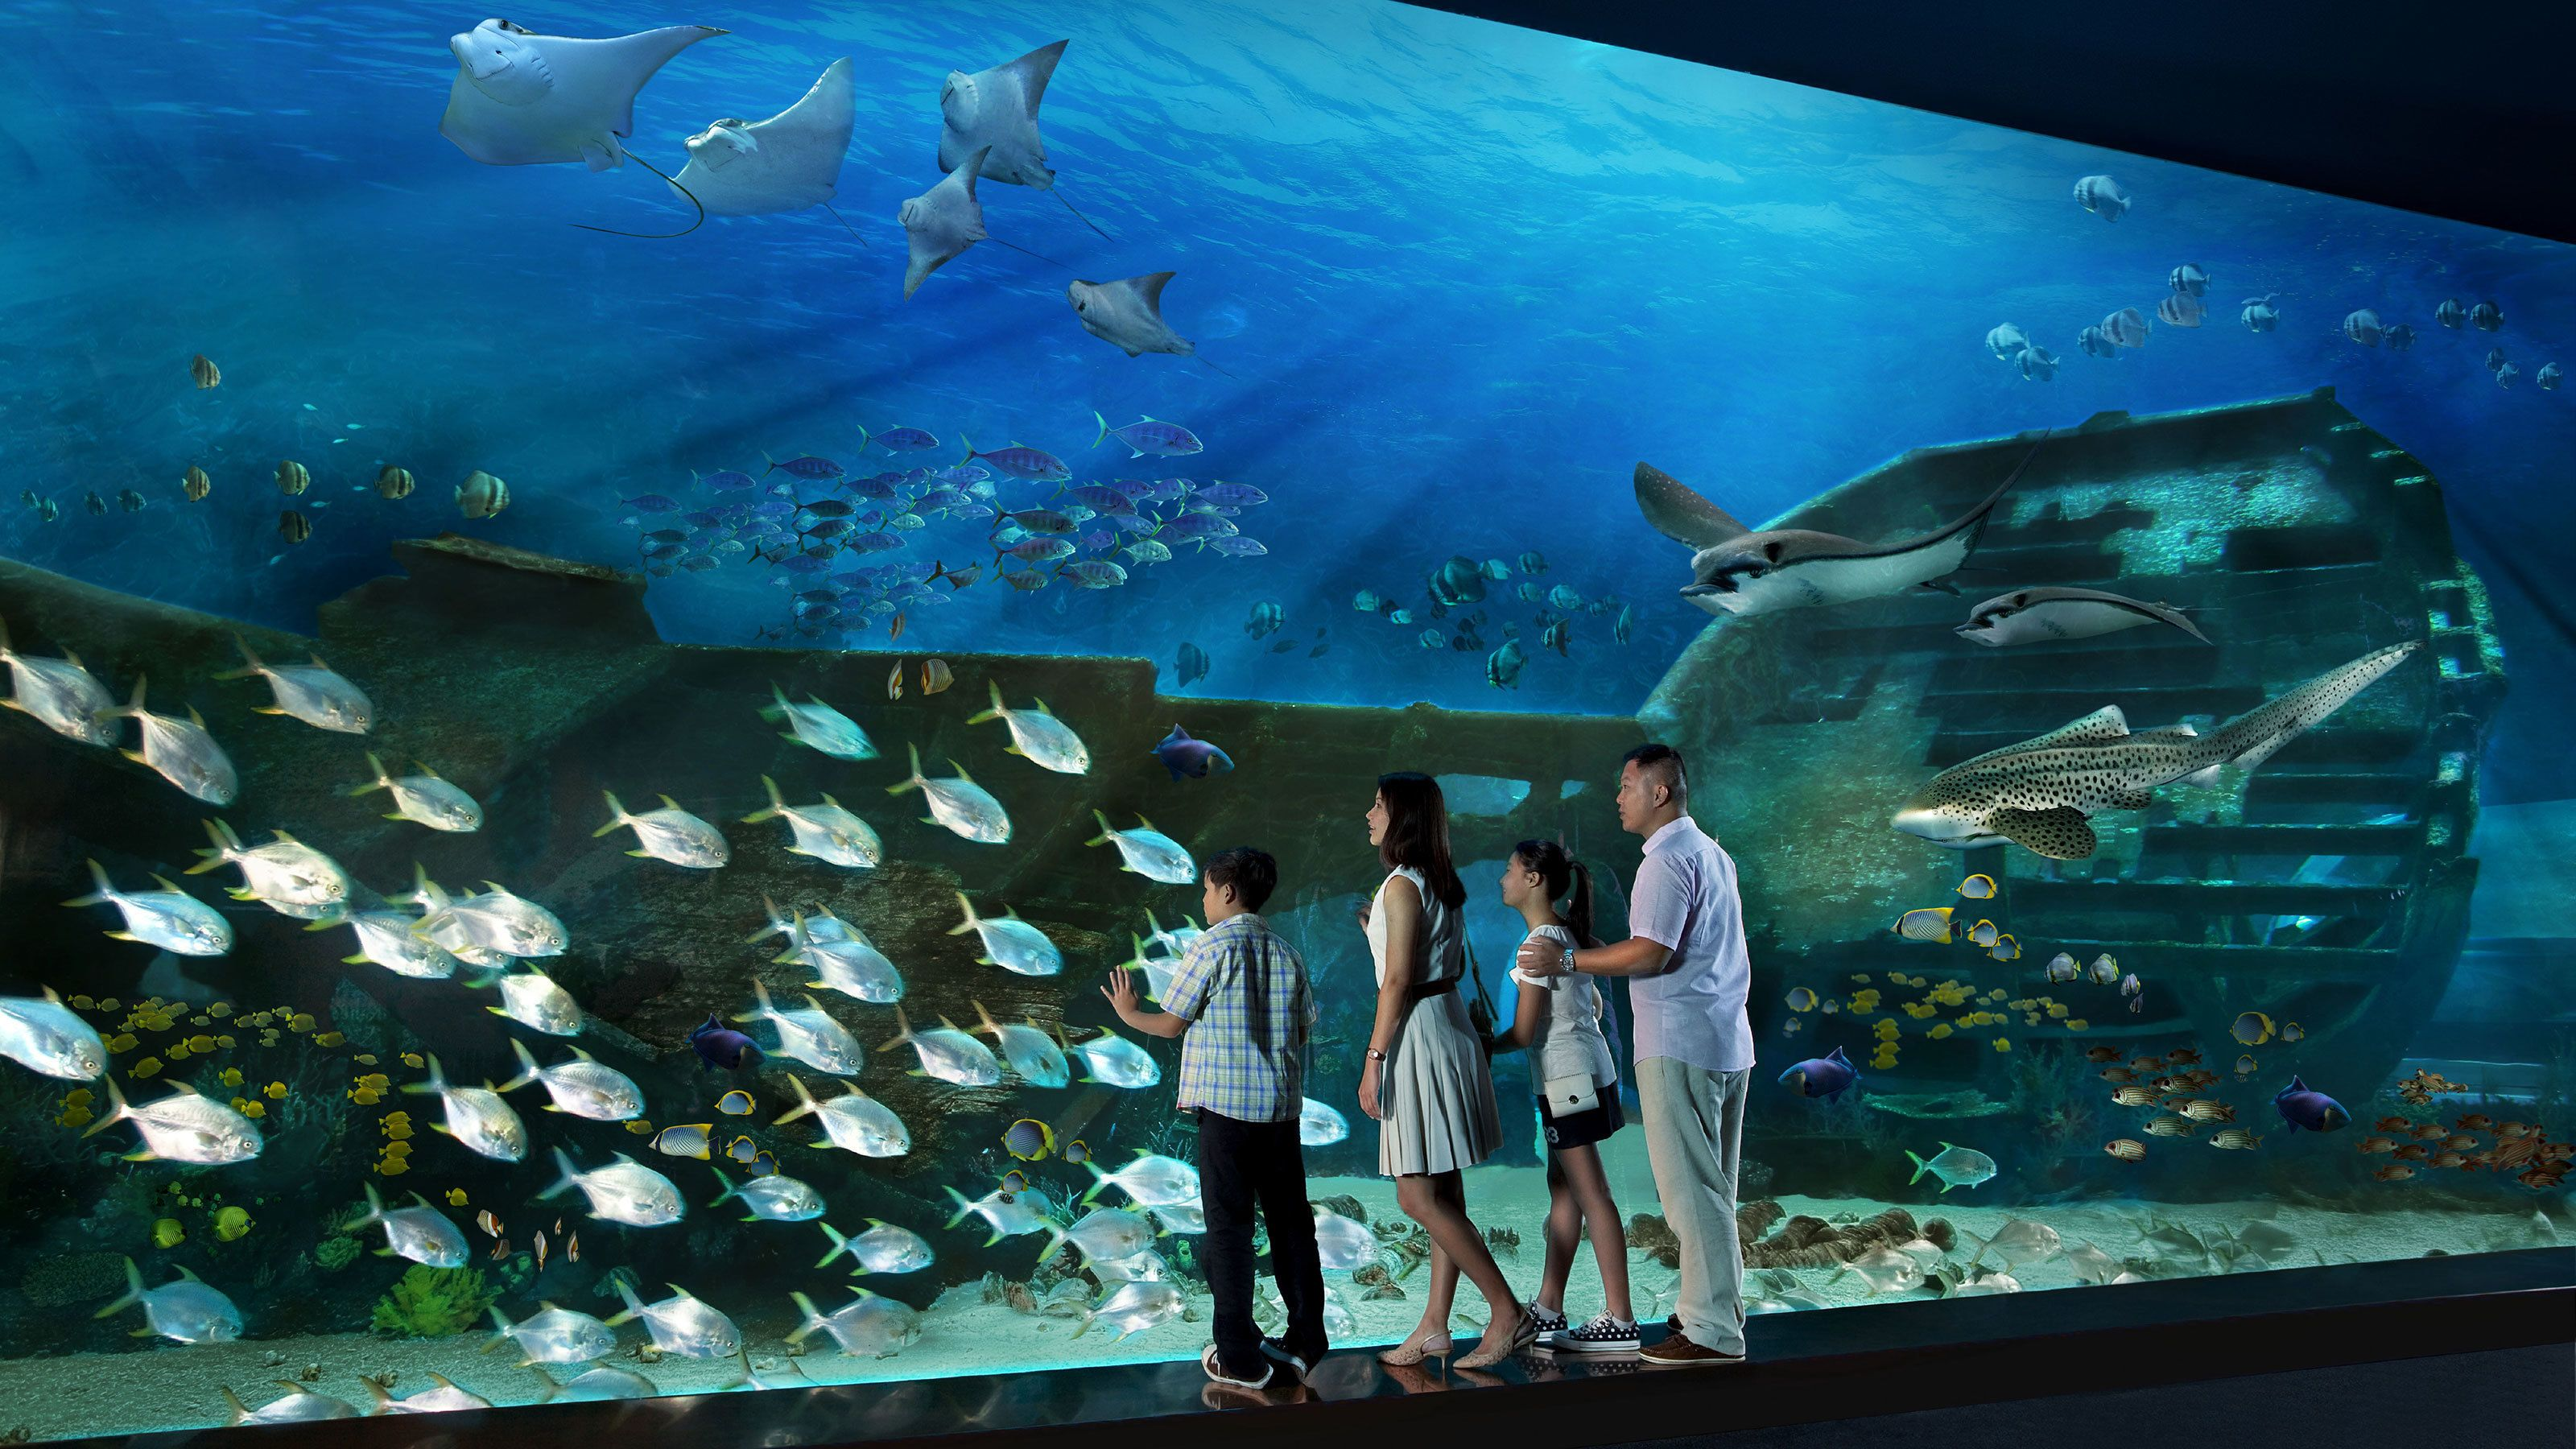 Family looking at large school of fish near the glass at the SEA Aquarium in Singapore